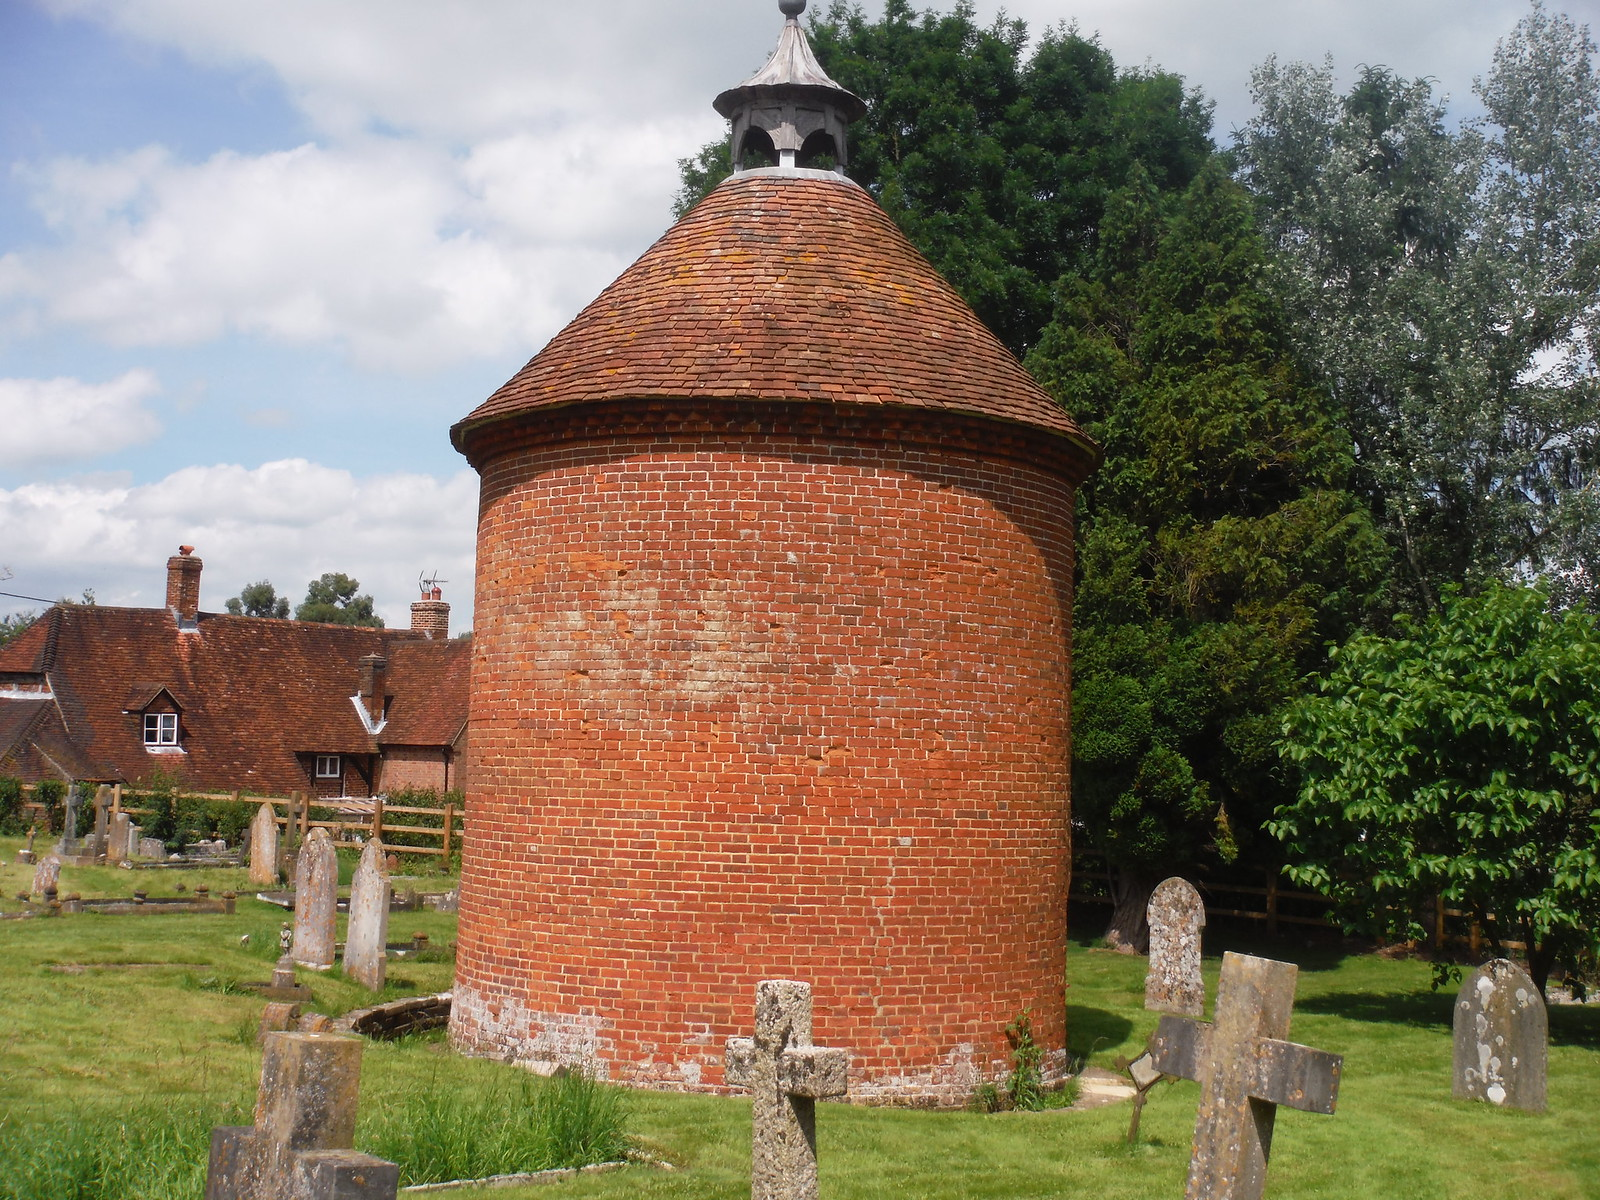 Columbarium, St. Mary's, Broughton SWC Walk 265 - Dean to Mottisfont & Dunbridge